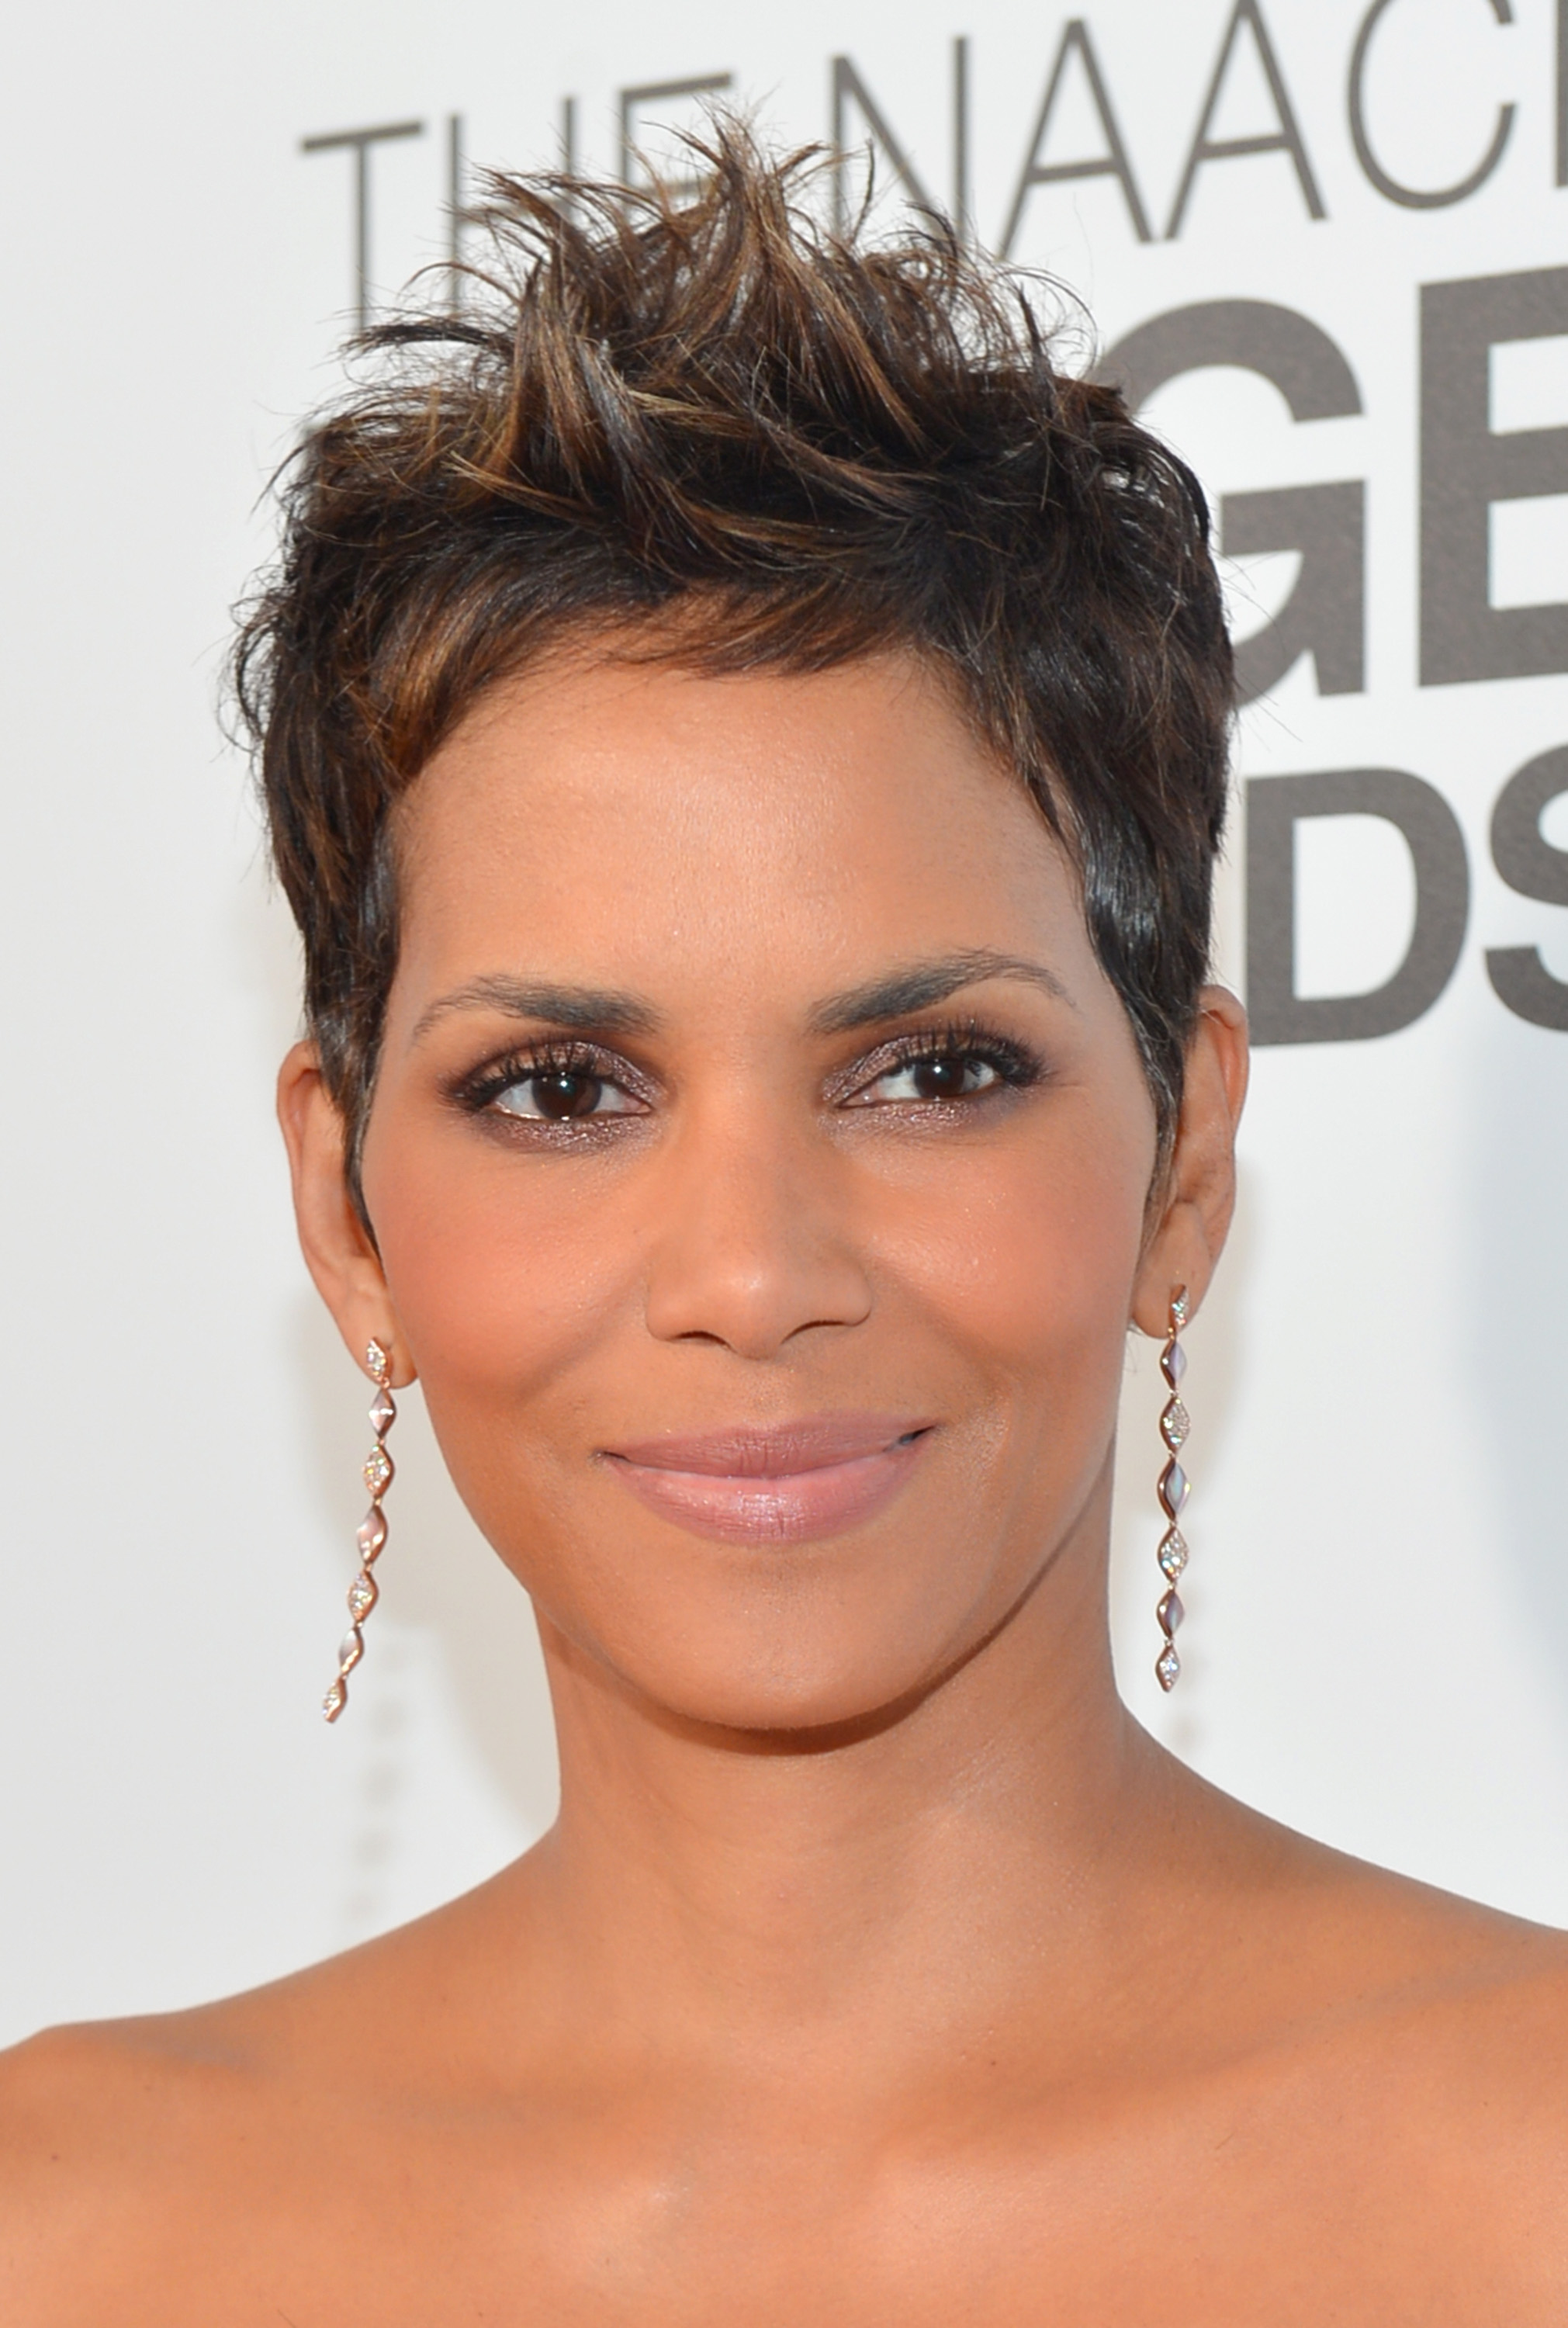 Awesome 45 Black Hairstyles For Short Hair Short Haircuts For Black Women Hairstyles For Women Draintrainus